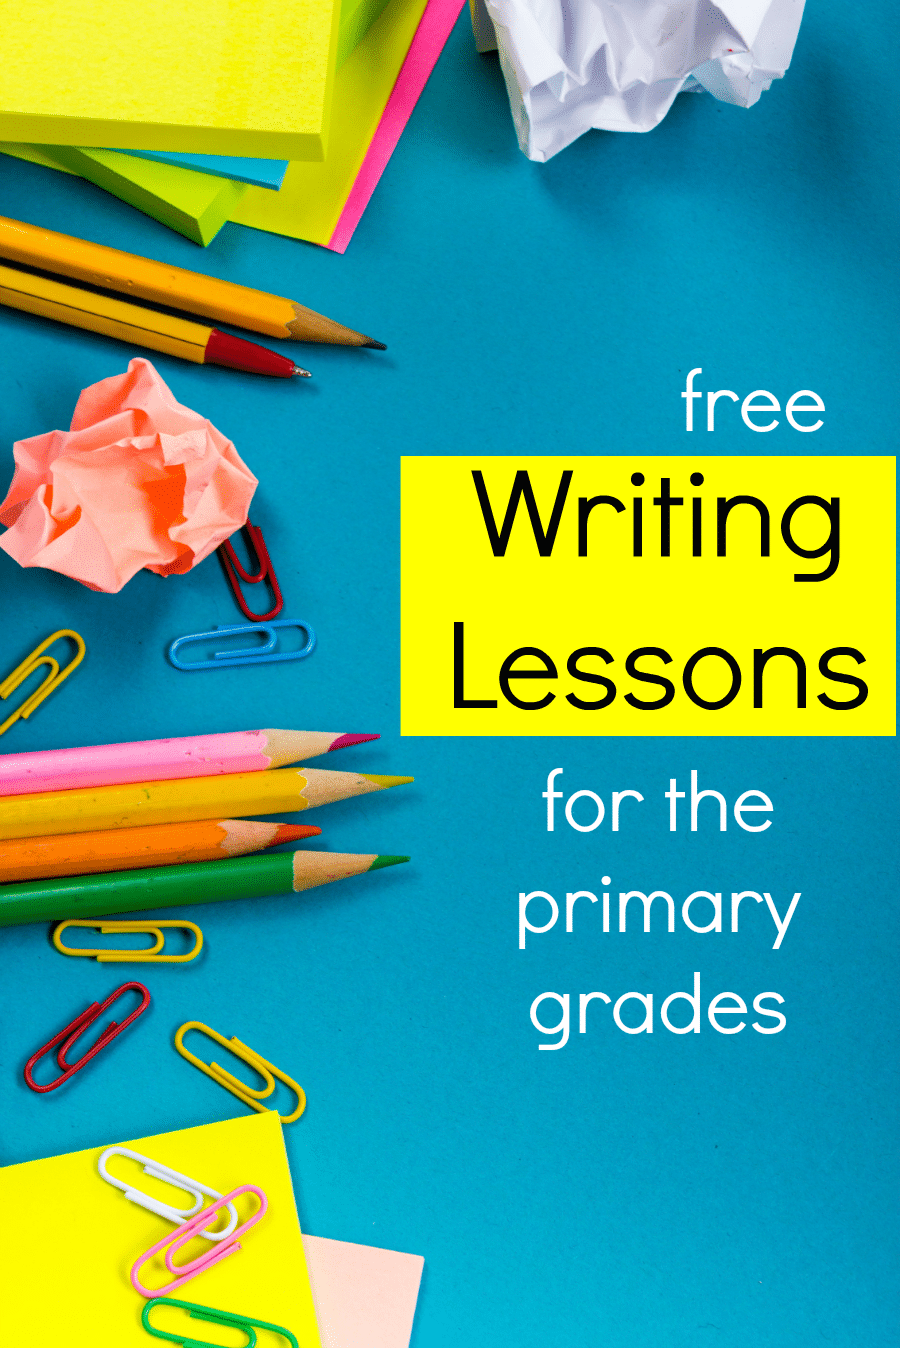 Simple writing lessons for the primary grades - The Measured Mom